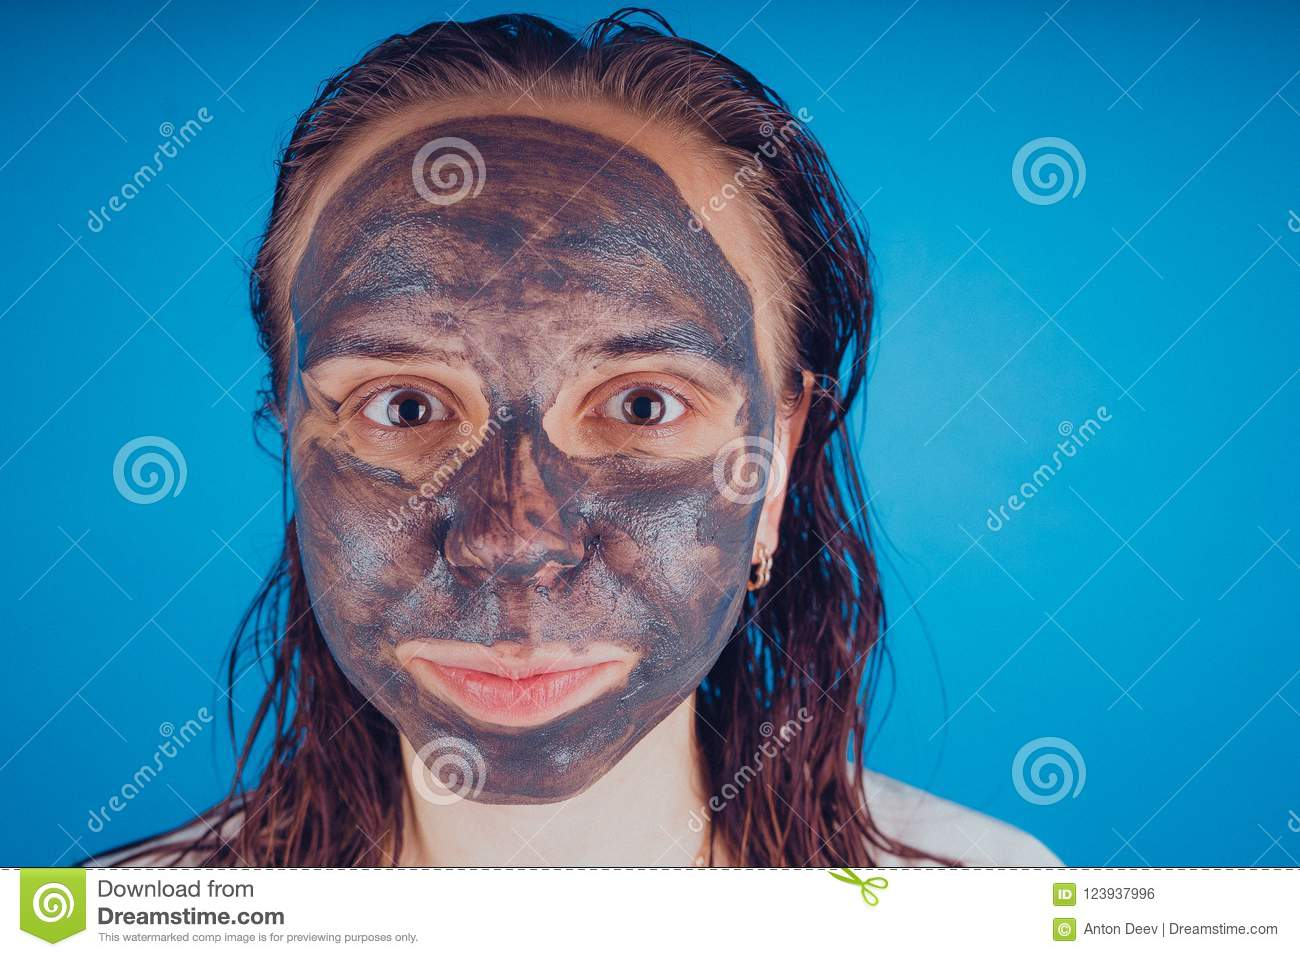 The girl put on the face mask for acne. The concept of facial